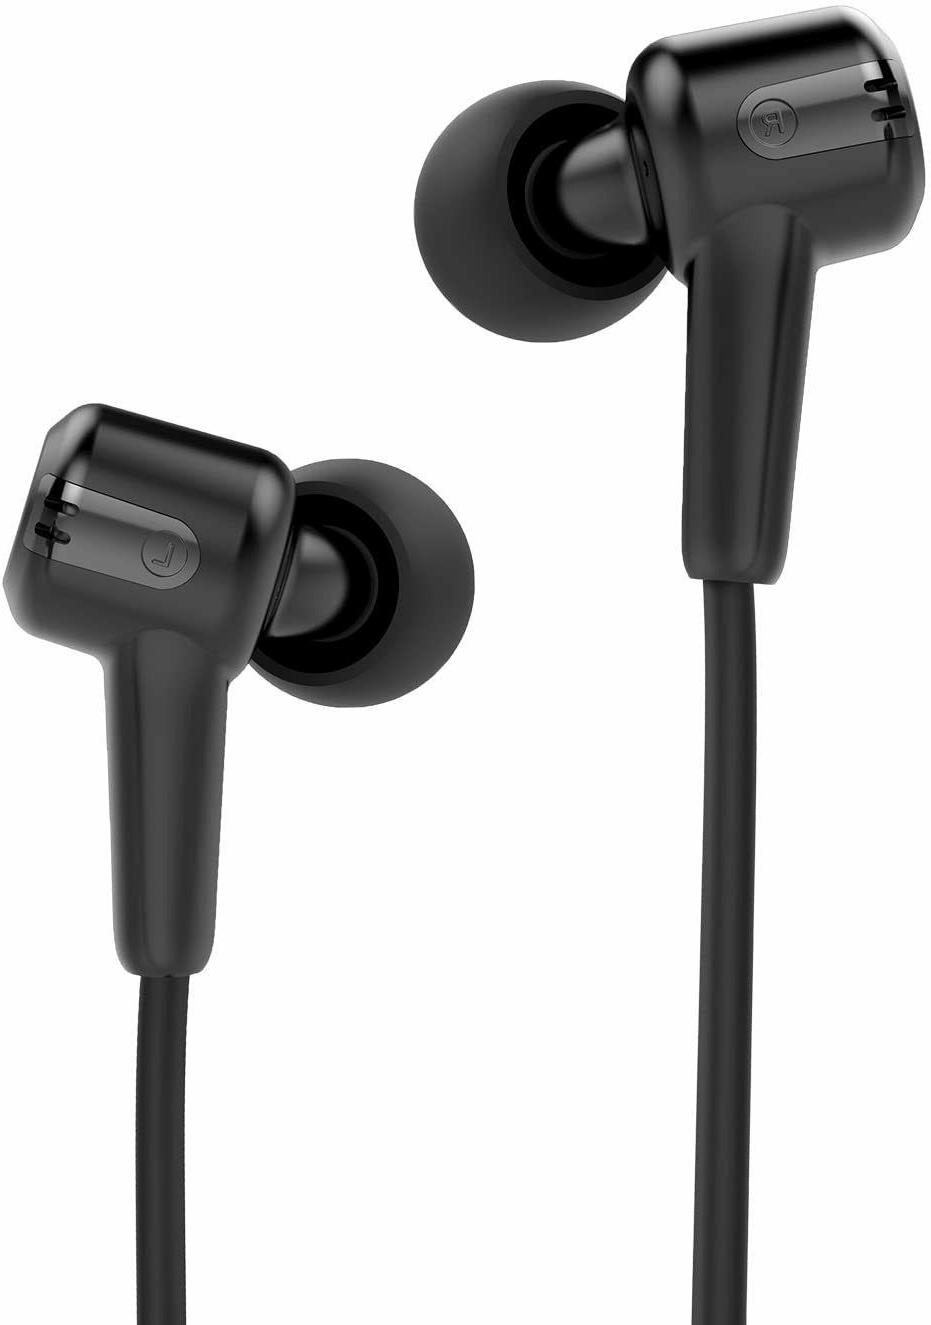 he7 bluetooth headphones active noise cancelling earbuds